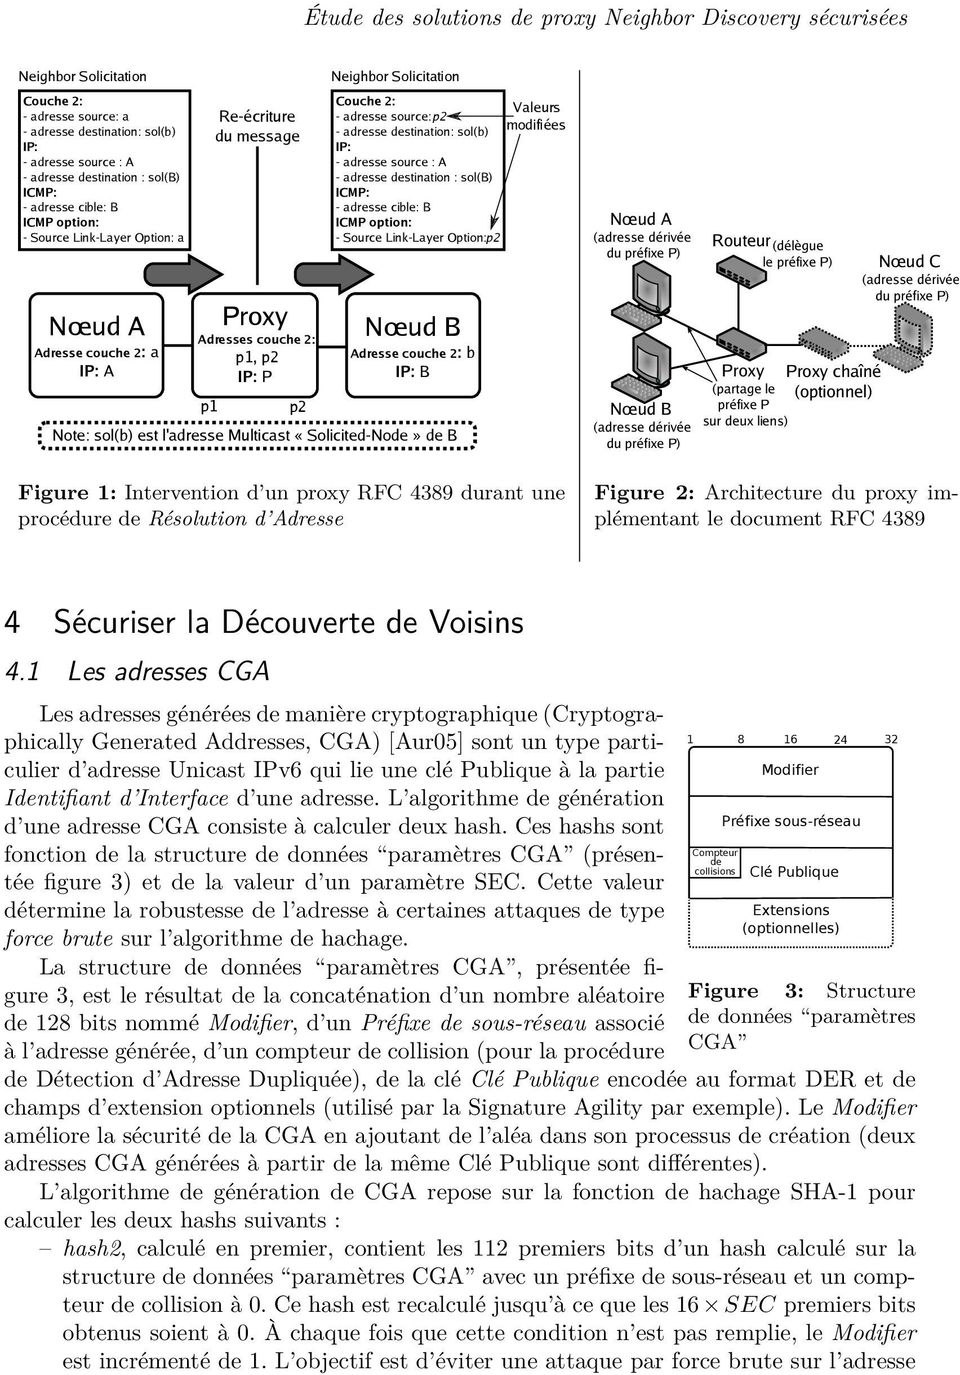 Valeurs - adresse source: p2 modifiées - adresse destination: sol(b) IP: - adresse source : A - adresse destination : sol(b) ICMP: - adresse cible: B ICMP option: - Source Link-Layer Option: p2 Nœud